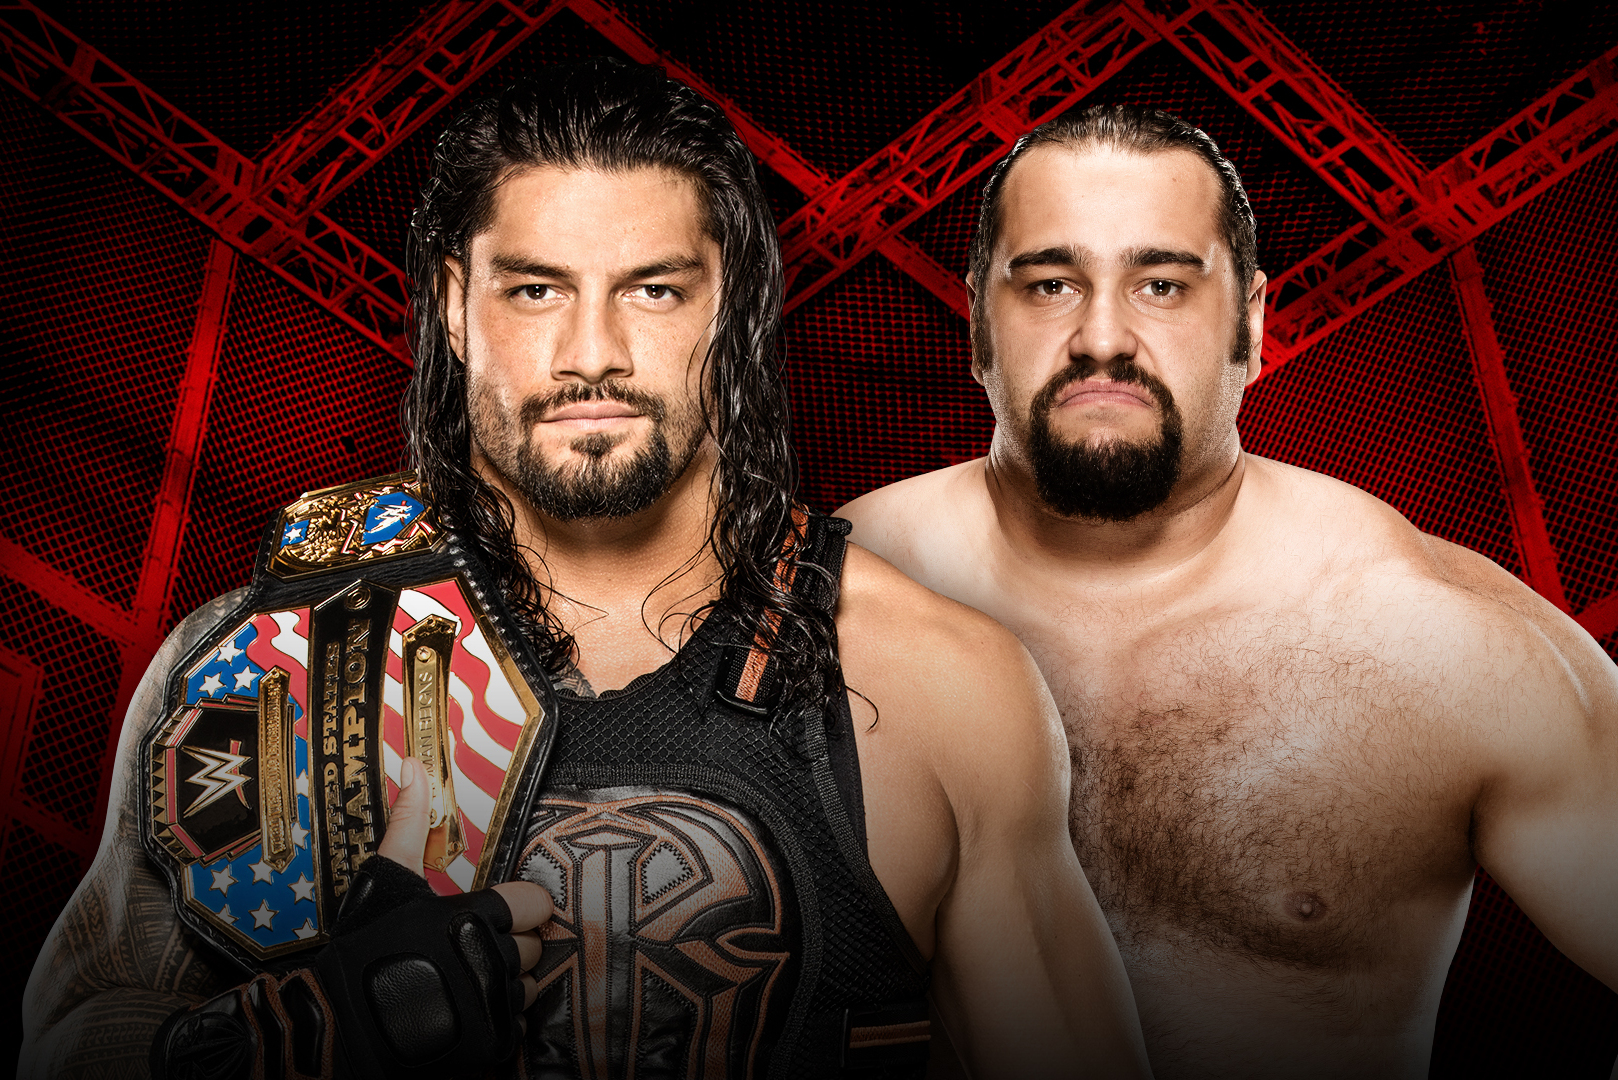 Roman Reigns Vs. Rusev: WWE Hell In A Cell 2016 Match